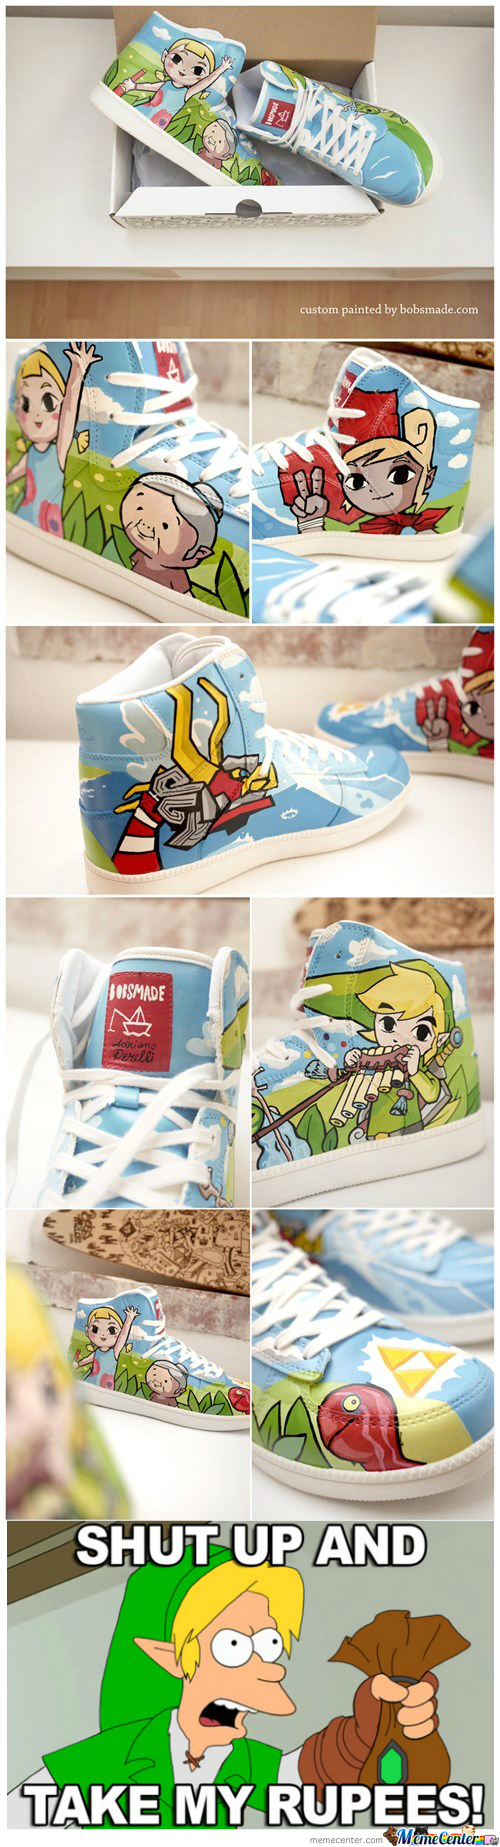 Zelda Sneakers: Shut Up And Take My Rupees!